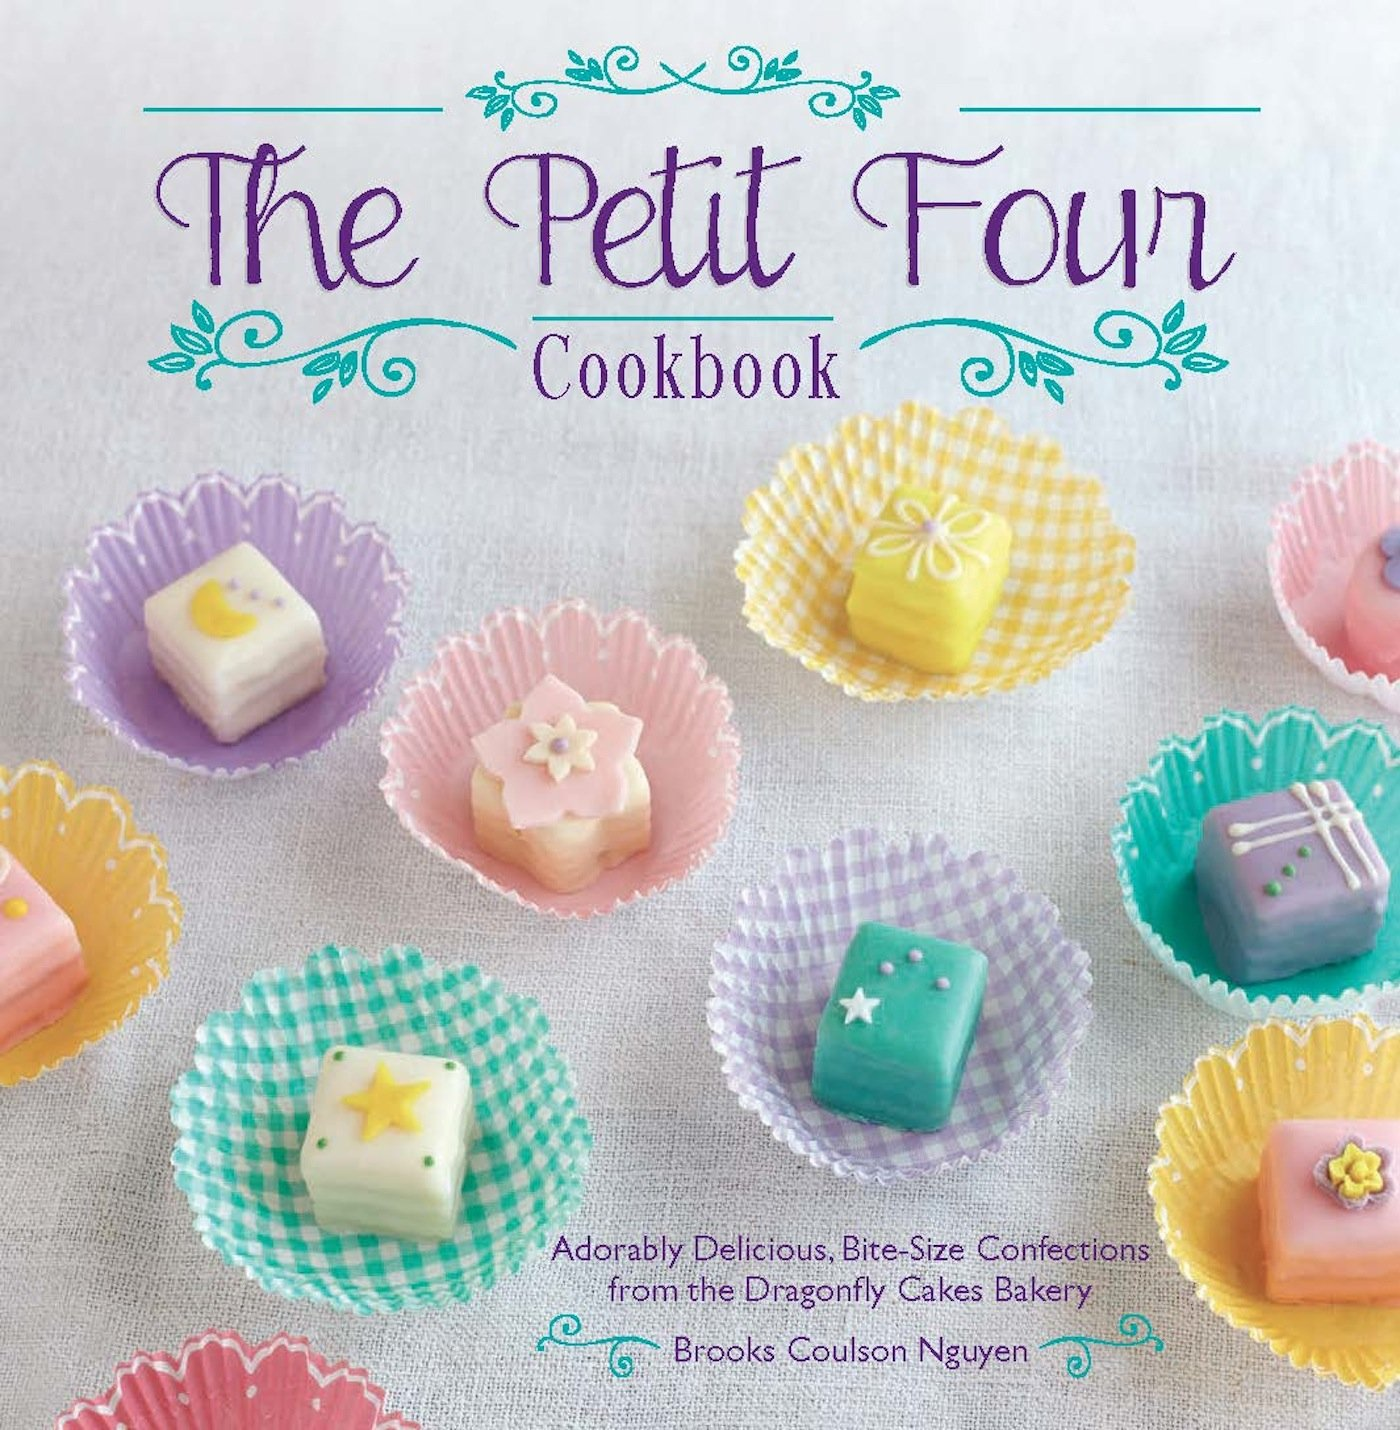 The Petit Four Cookbook: Adorably Delicious, Bite-Size Confections from the Dragonfly Cakes Bakery pdf epub